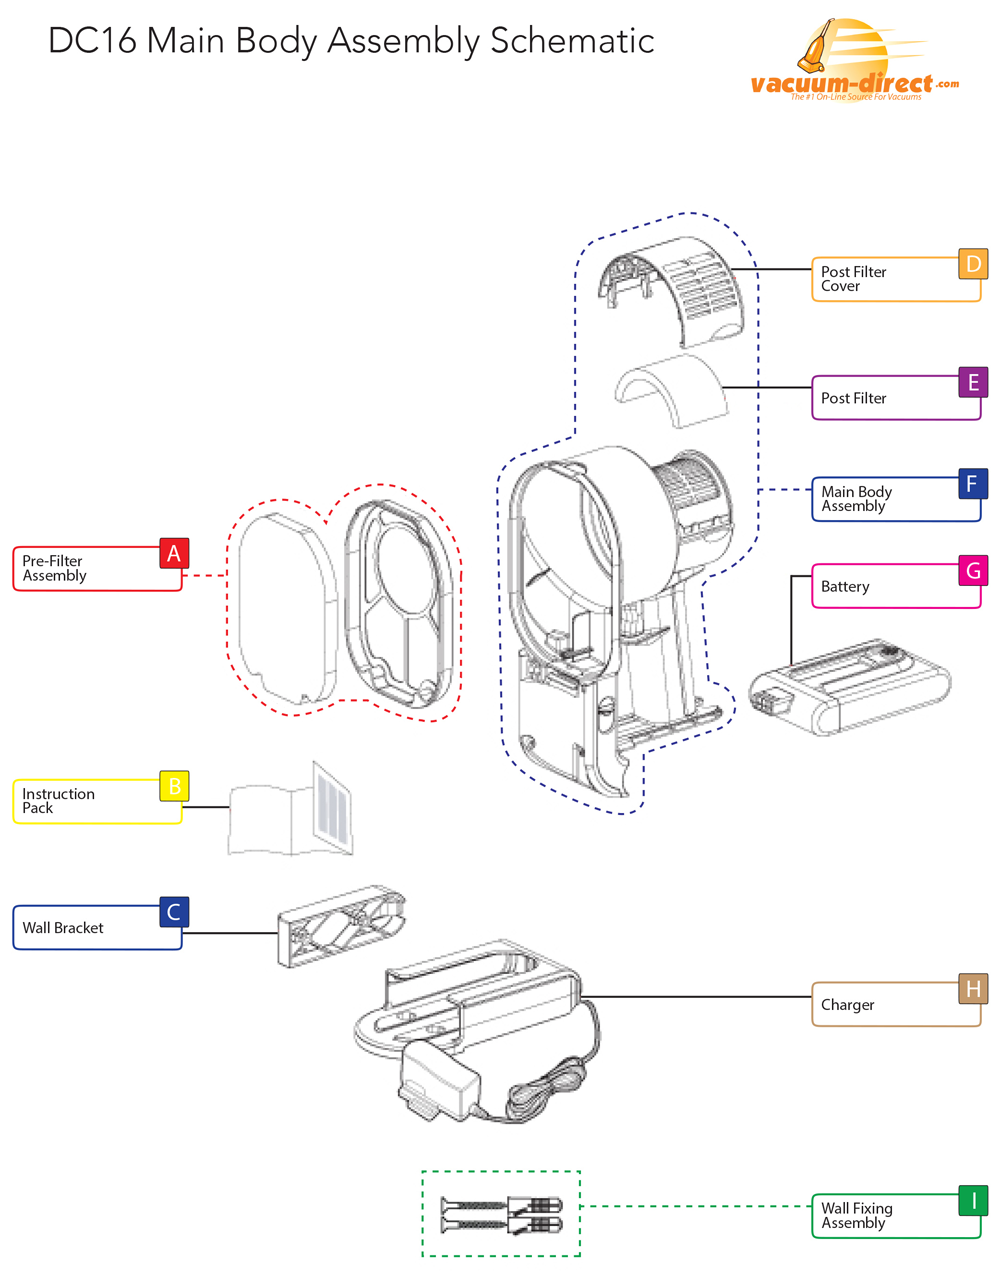 Dyson DC16 Main Body Assembly Parts Diagram